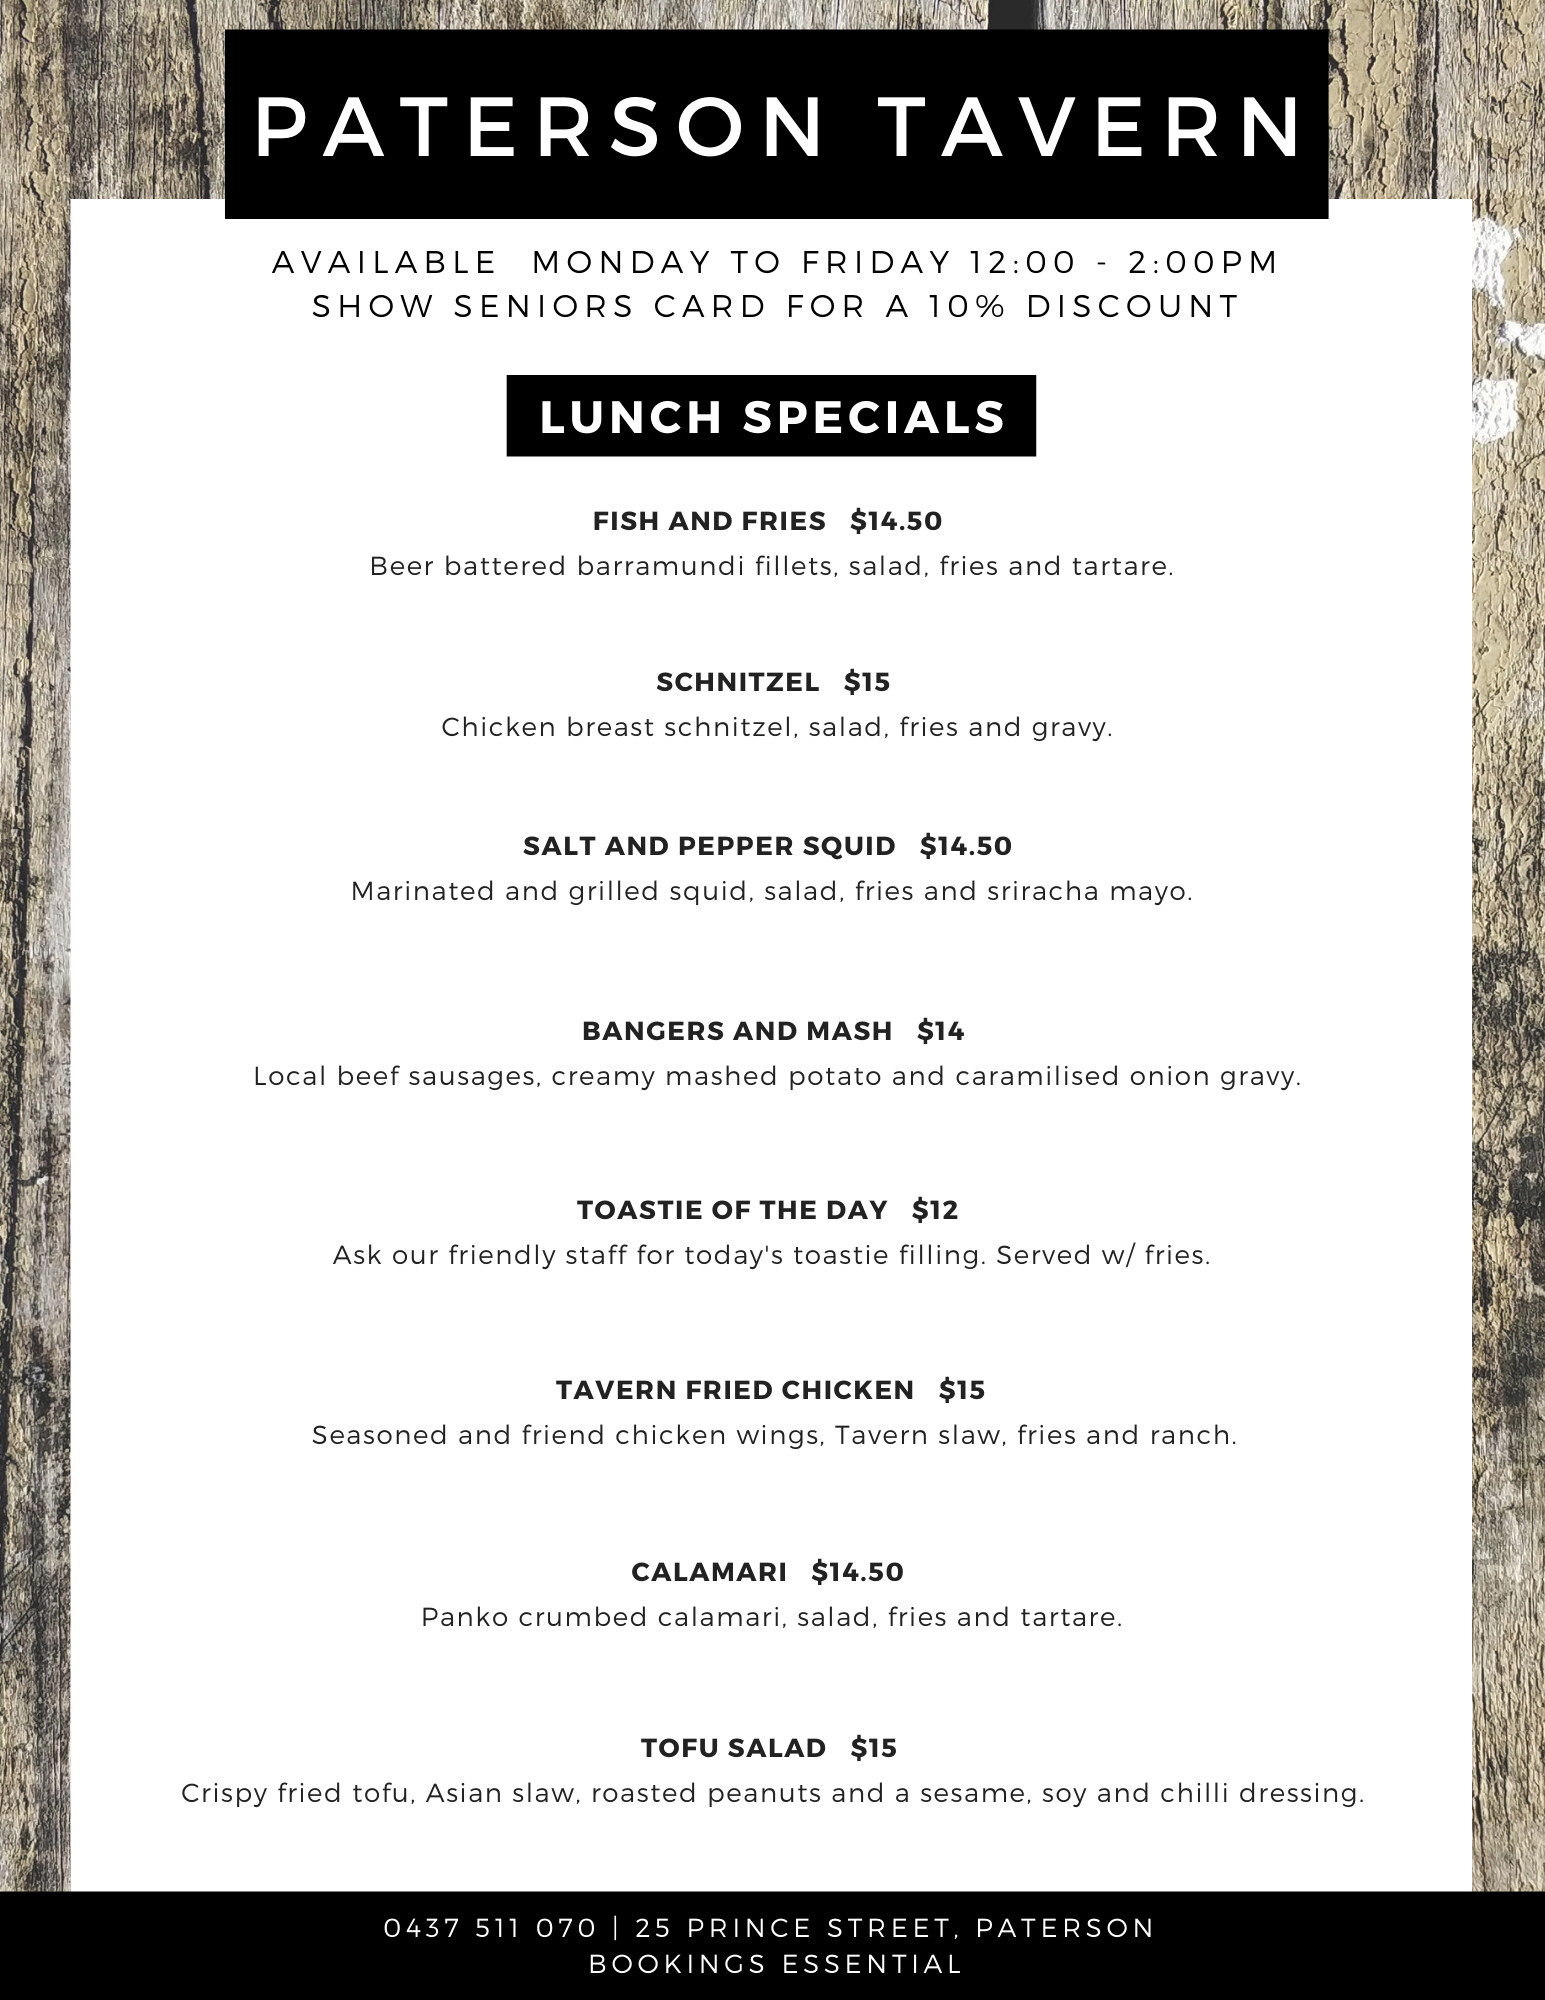 Paterson Tavern Lunch Specials